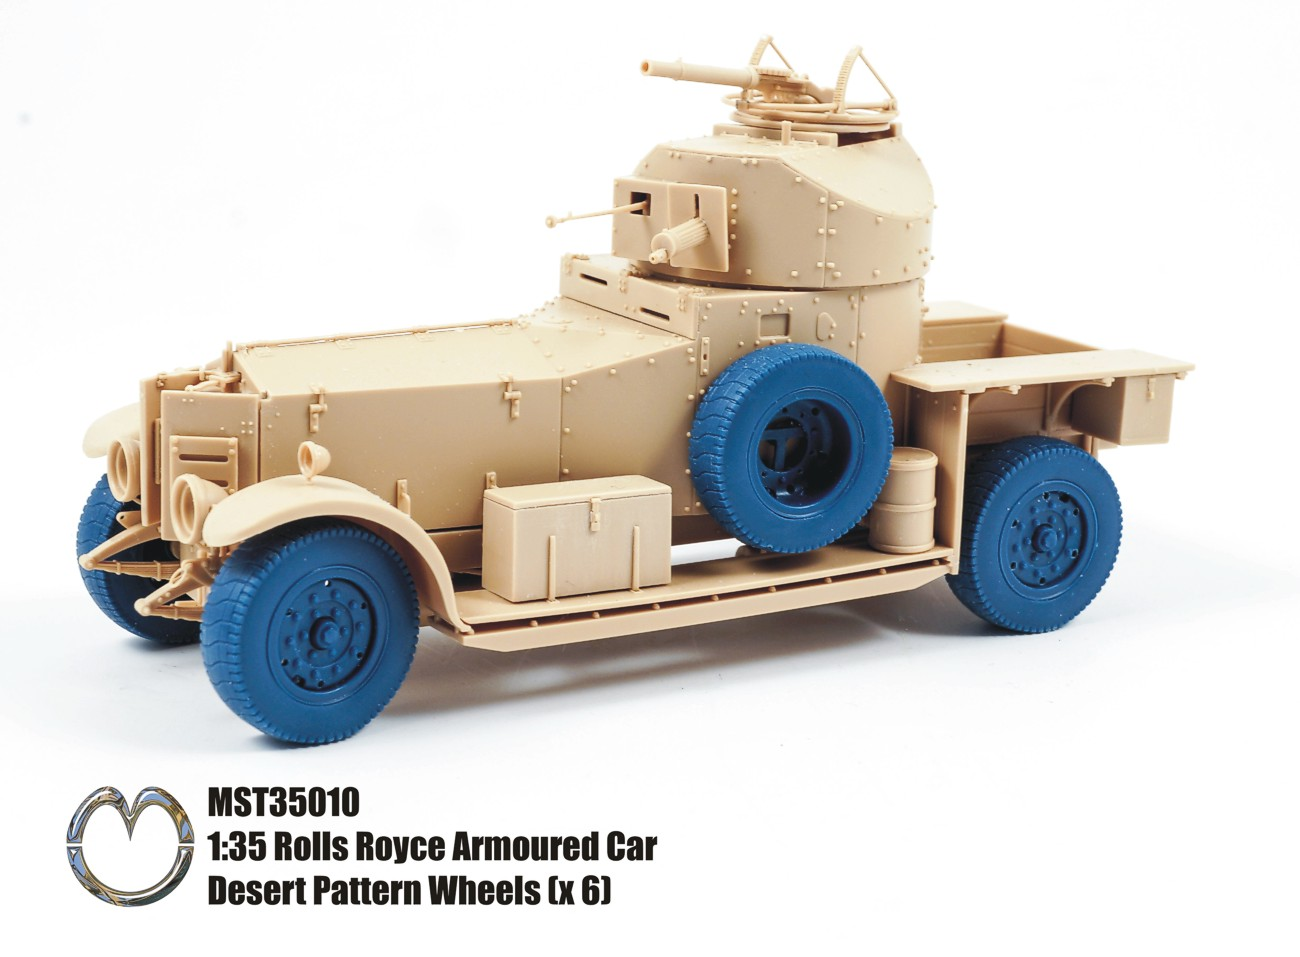 MST35010 Rolls Royce Armoured Car Desert Pattern Wheels (x6)